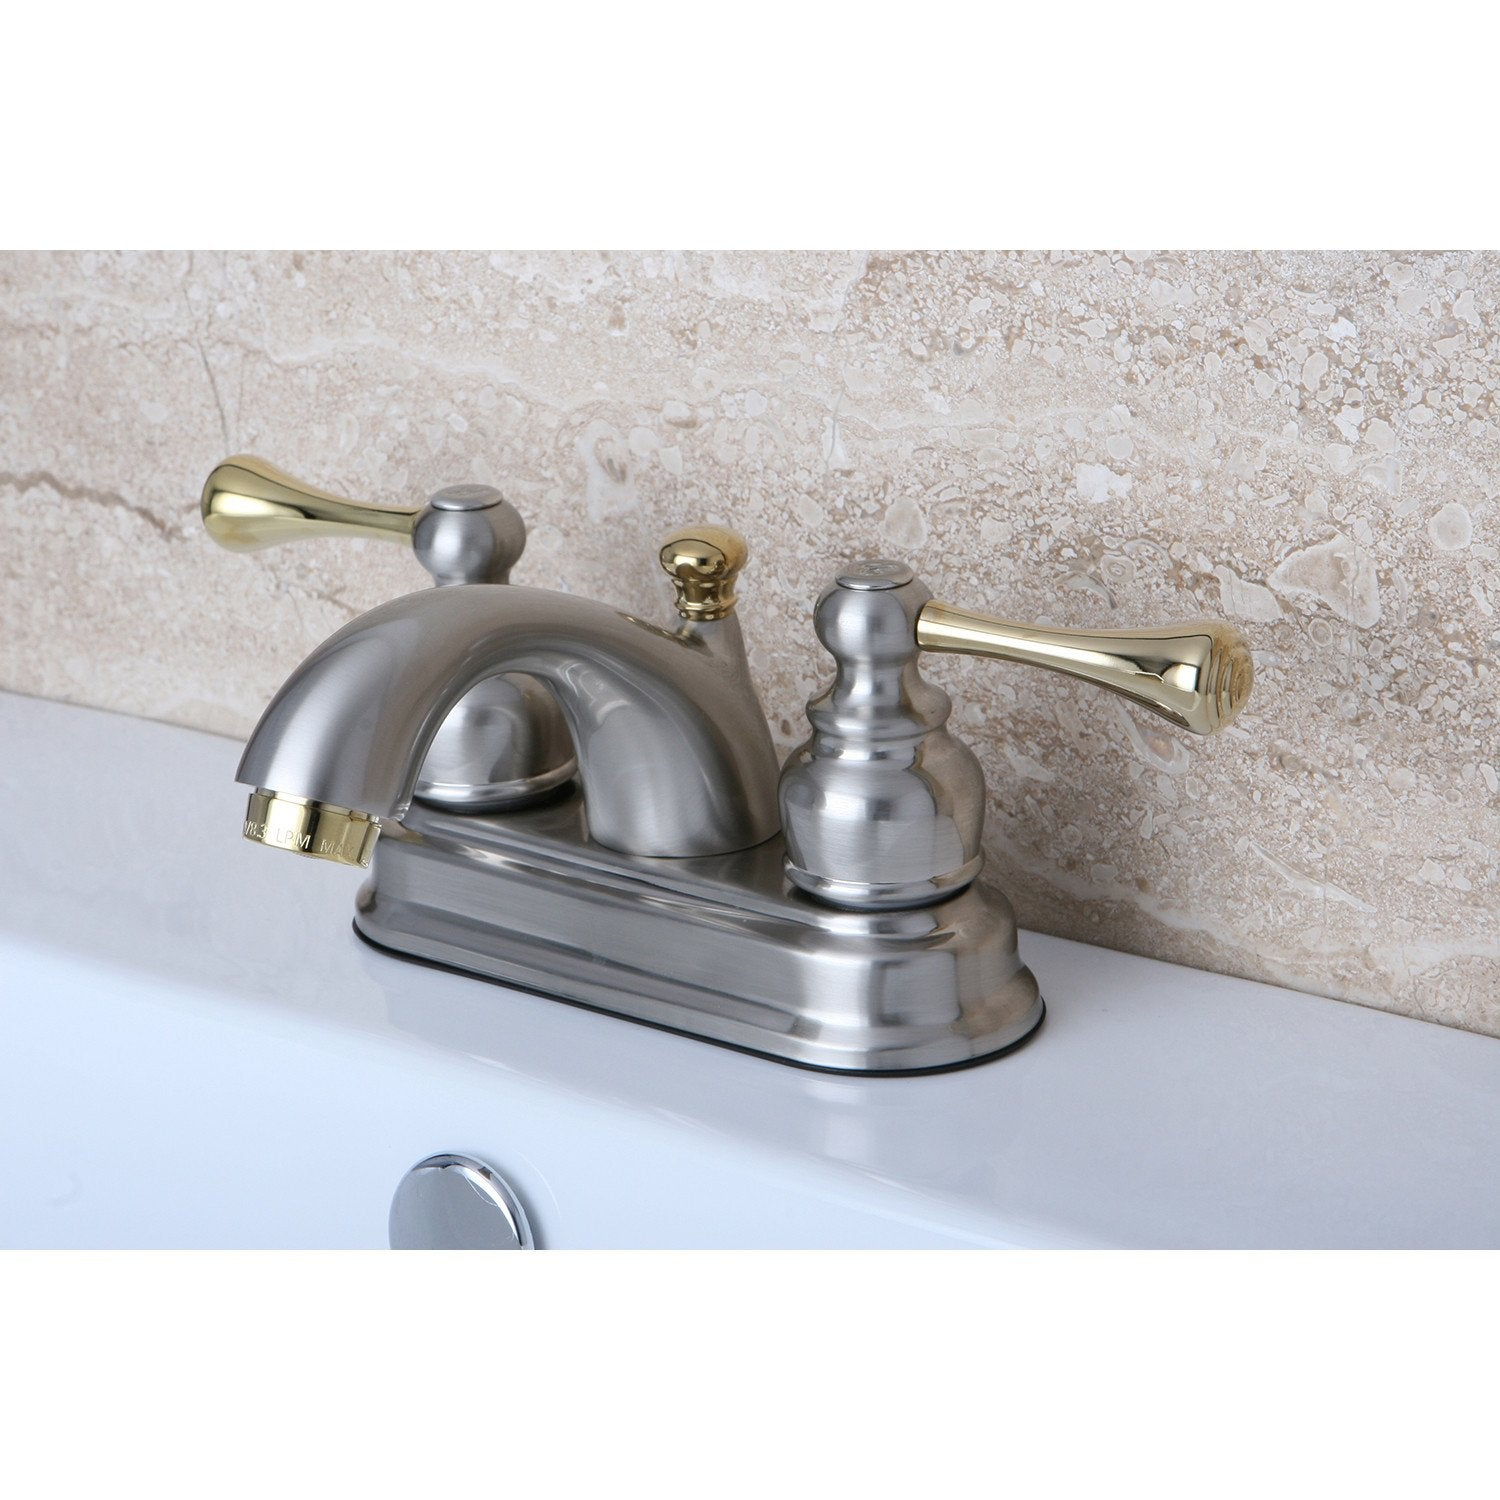 "Kingston Satin Nickel / Polished Brass 4"" Centerset Bathroom Faucet KB3609BL"